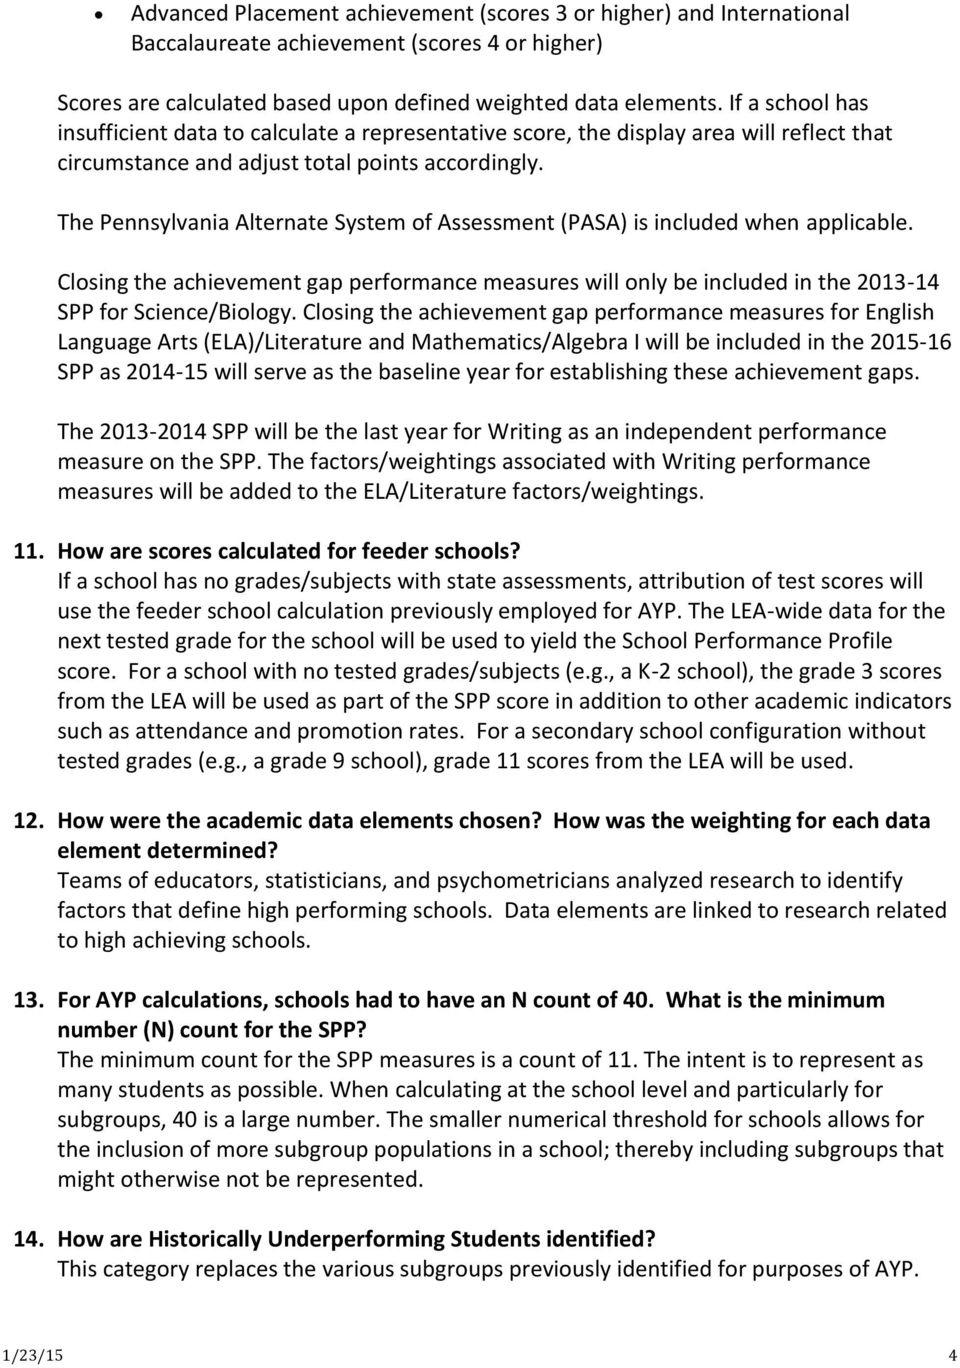 The Pennsylvania Alternate System of Assessment (PASA) is included when applicable. Closing the achievement gap performance measures will only be included in the 2013-14 SPP for Science/Biology.